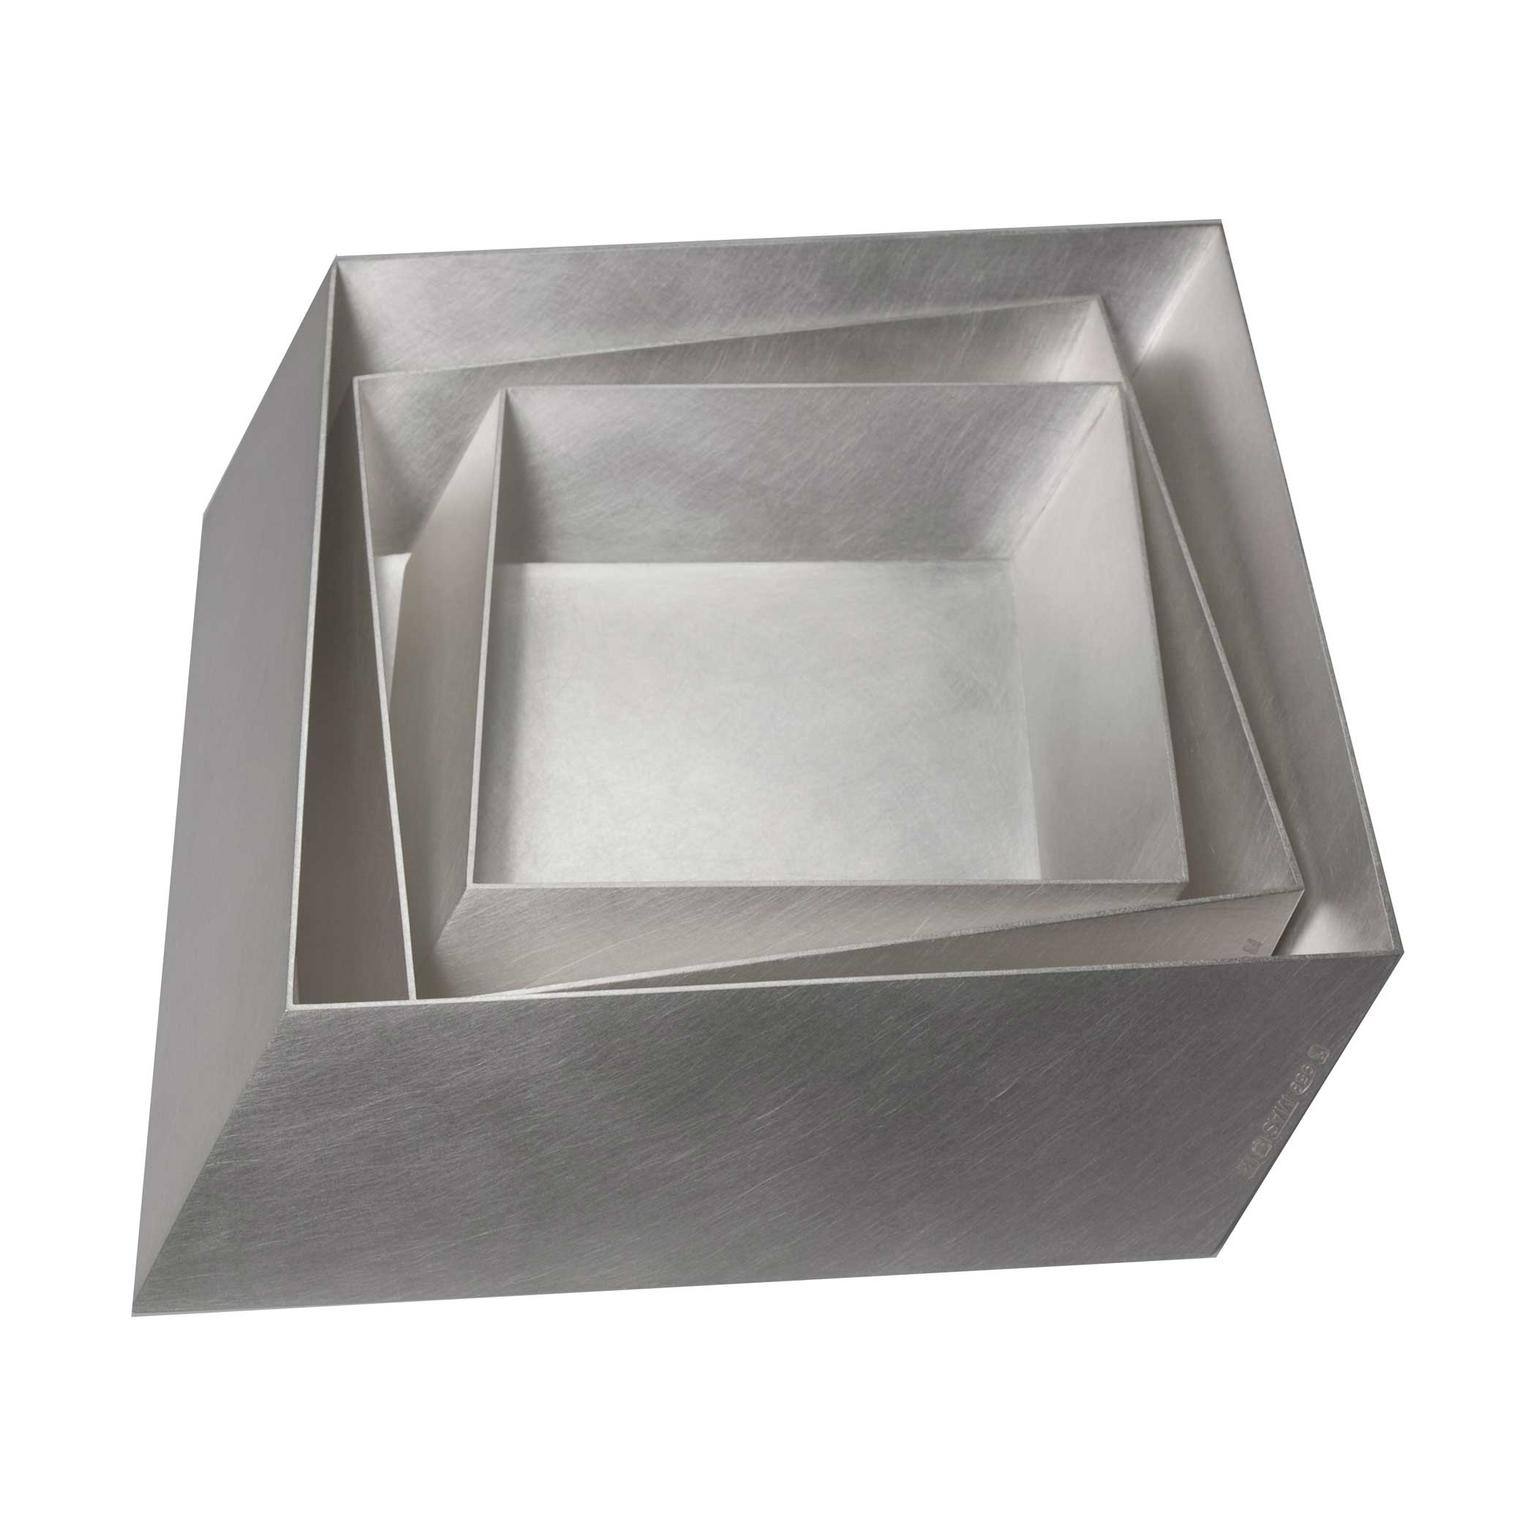 Mary-Ann Simmons Nested Square silver dishes